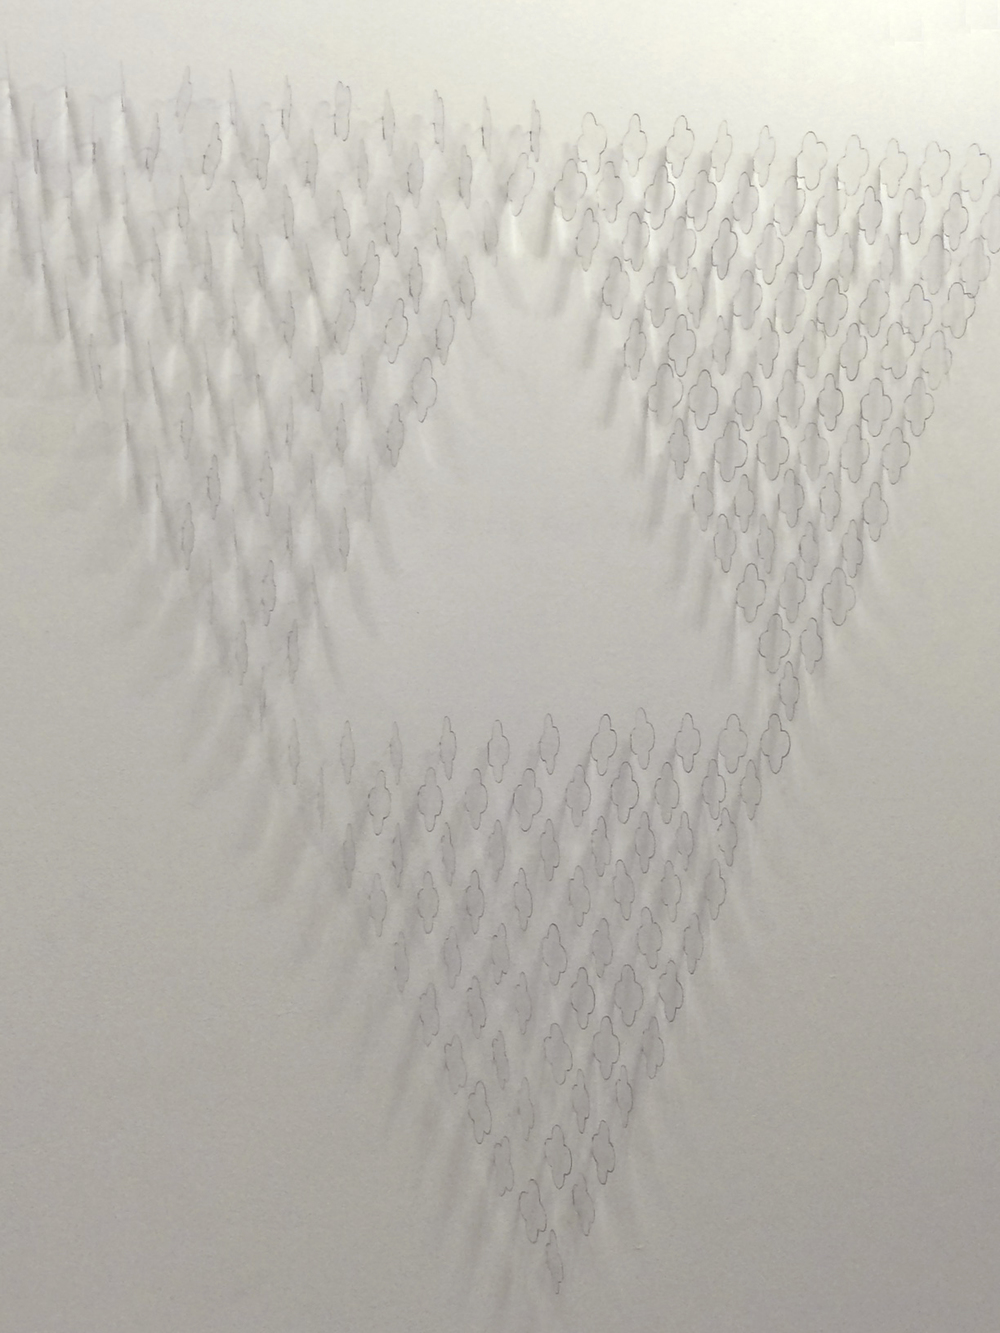 239 Delta  239 Acetate Quatrefoils and marker on cut dry wall. Site specific. 150 x 150 cm. 2015